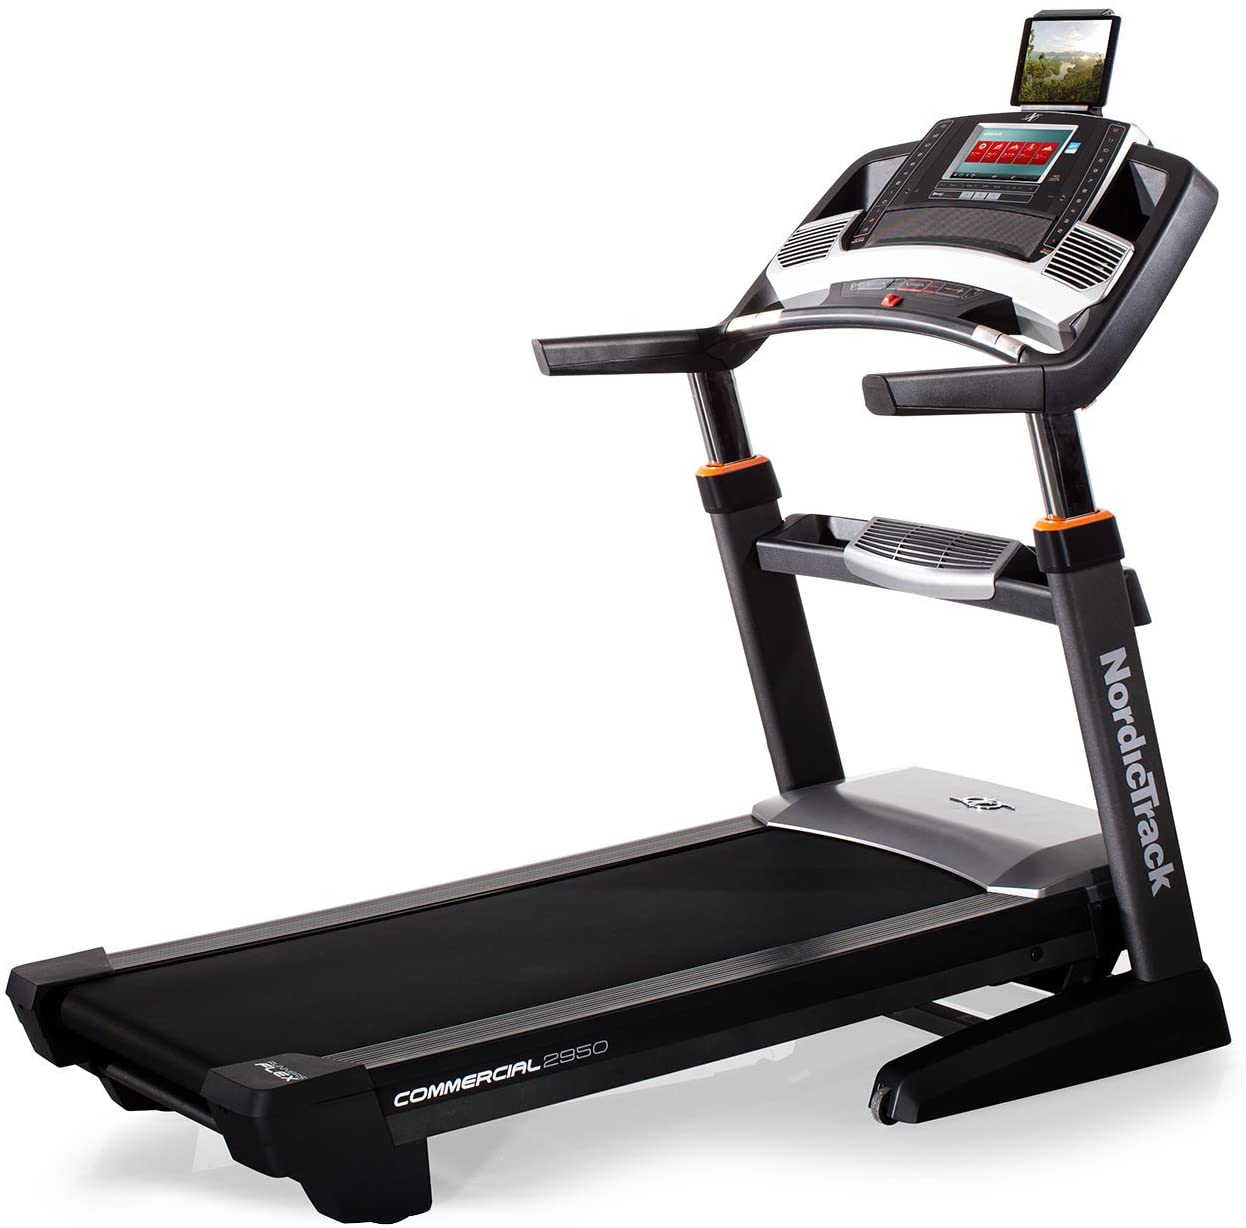 NORDICTRACK COMMERCIAL 2950 TREADMILL REVIEW